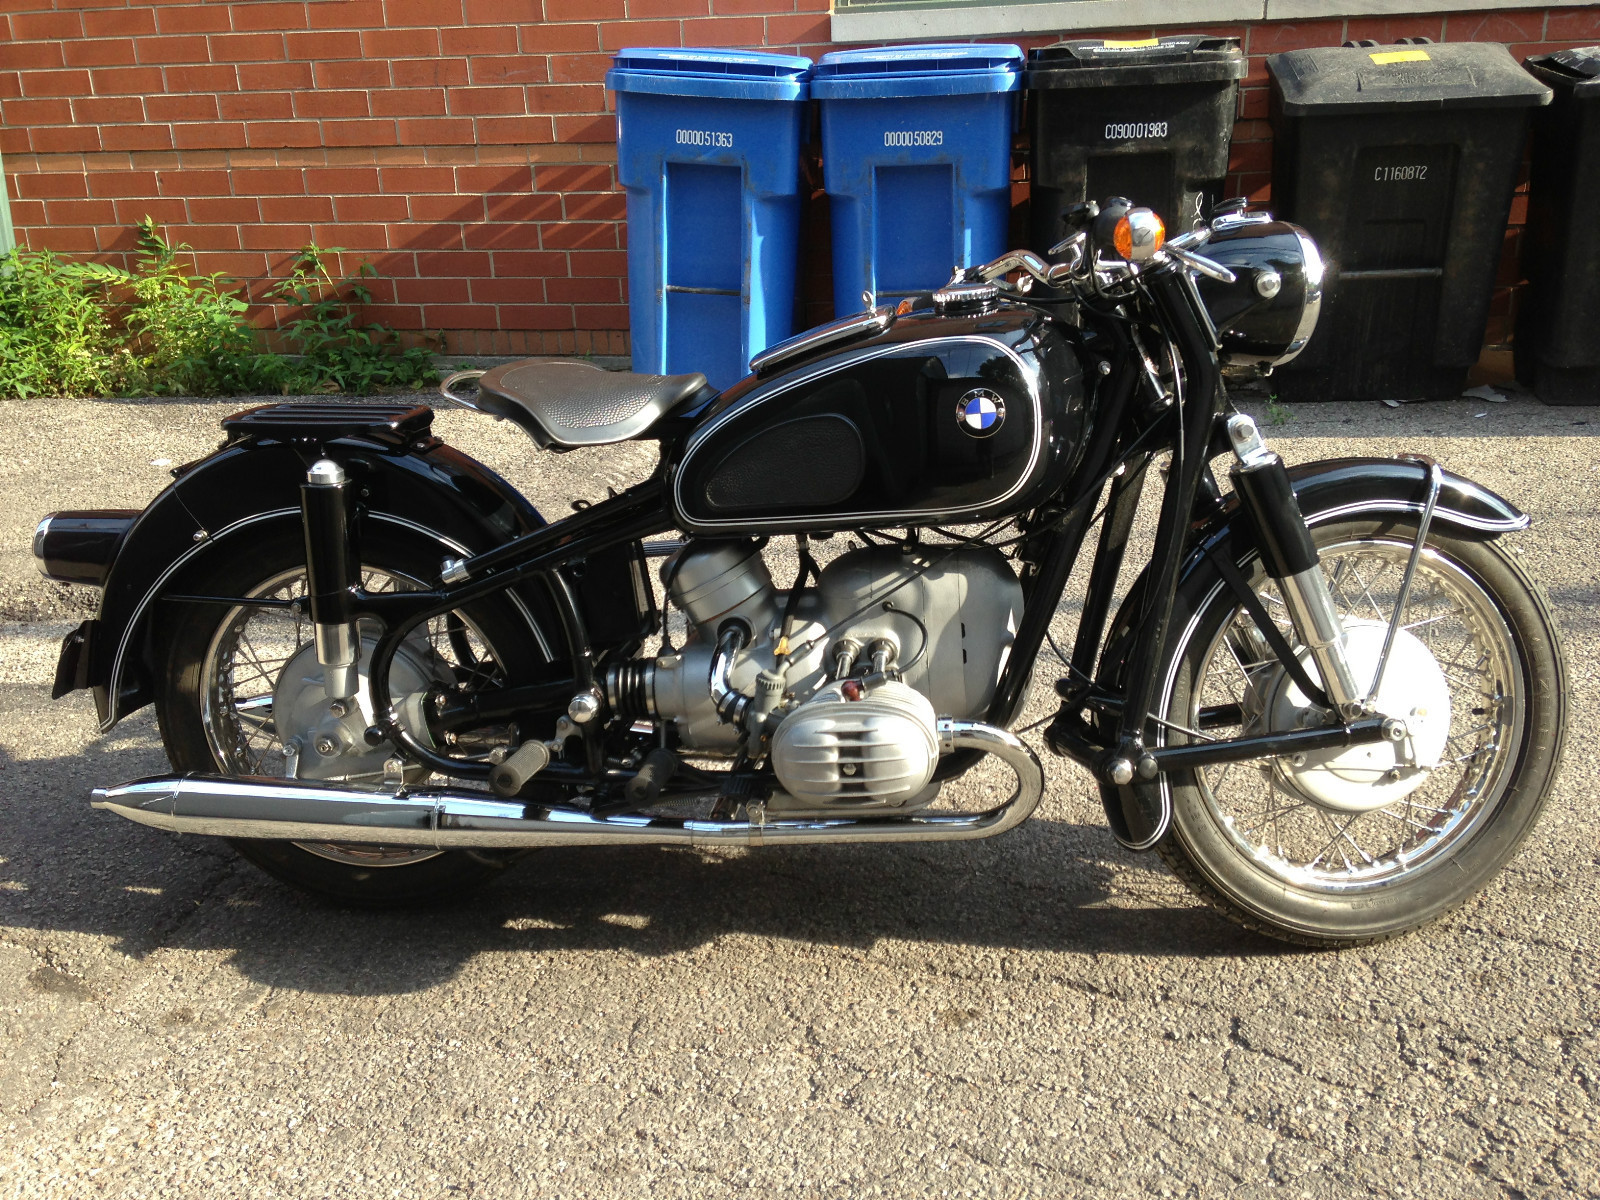 Restored Bmw R50 2 1961 Photographs At Classic Bikes Restored Bikes Restored